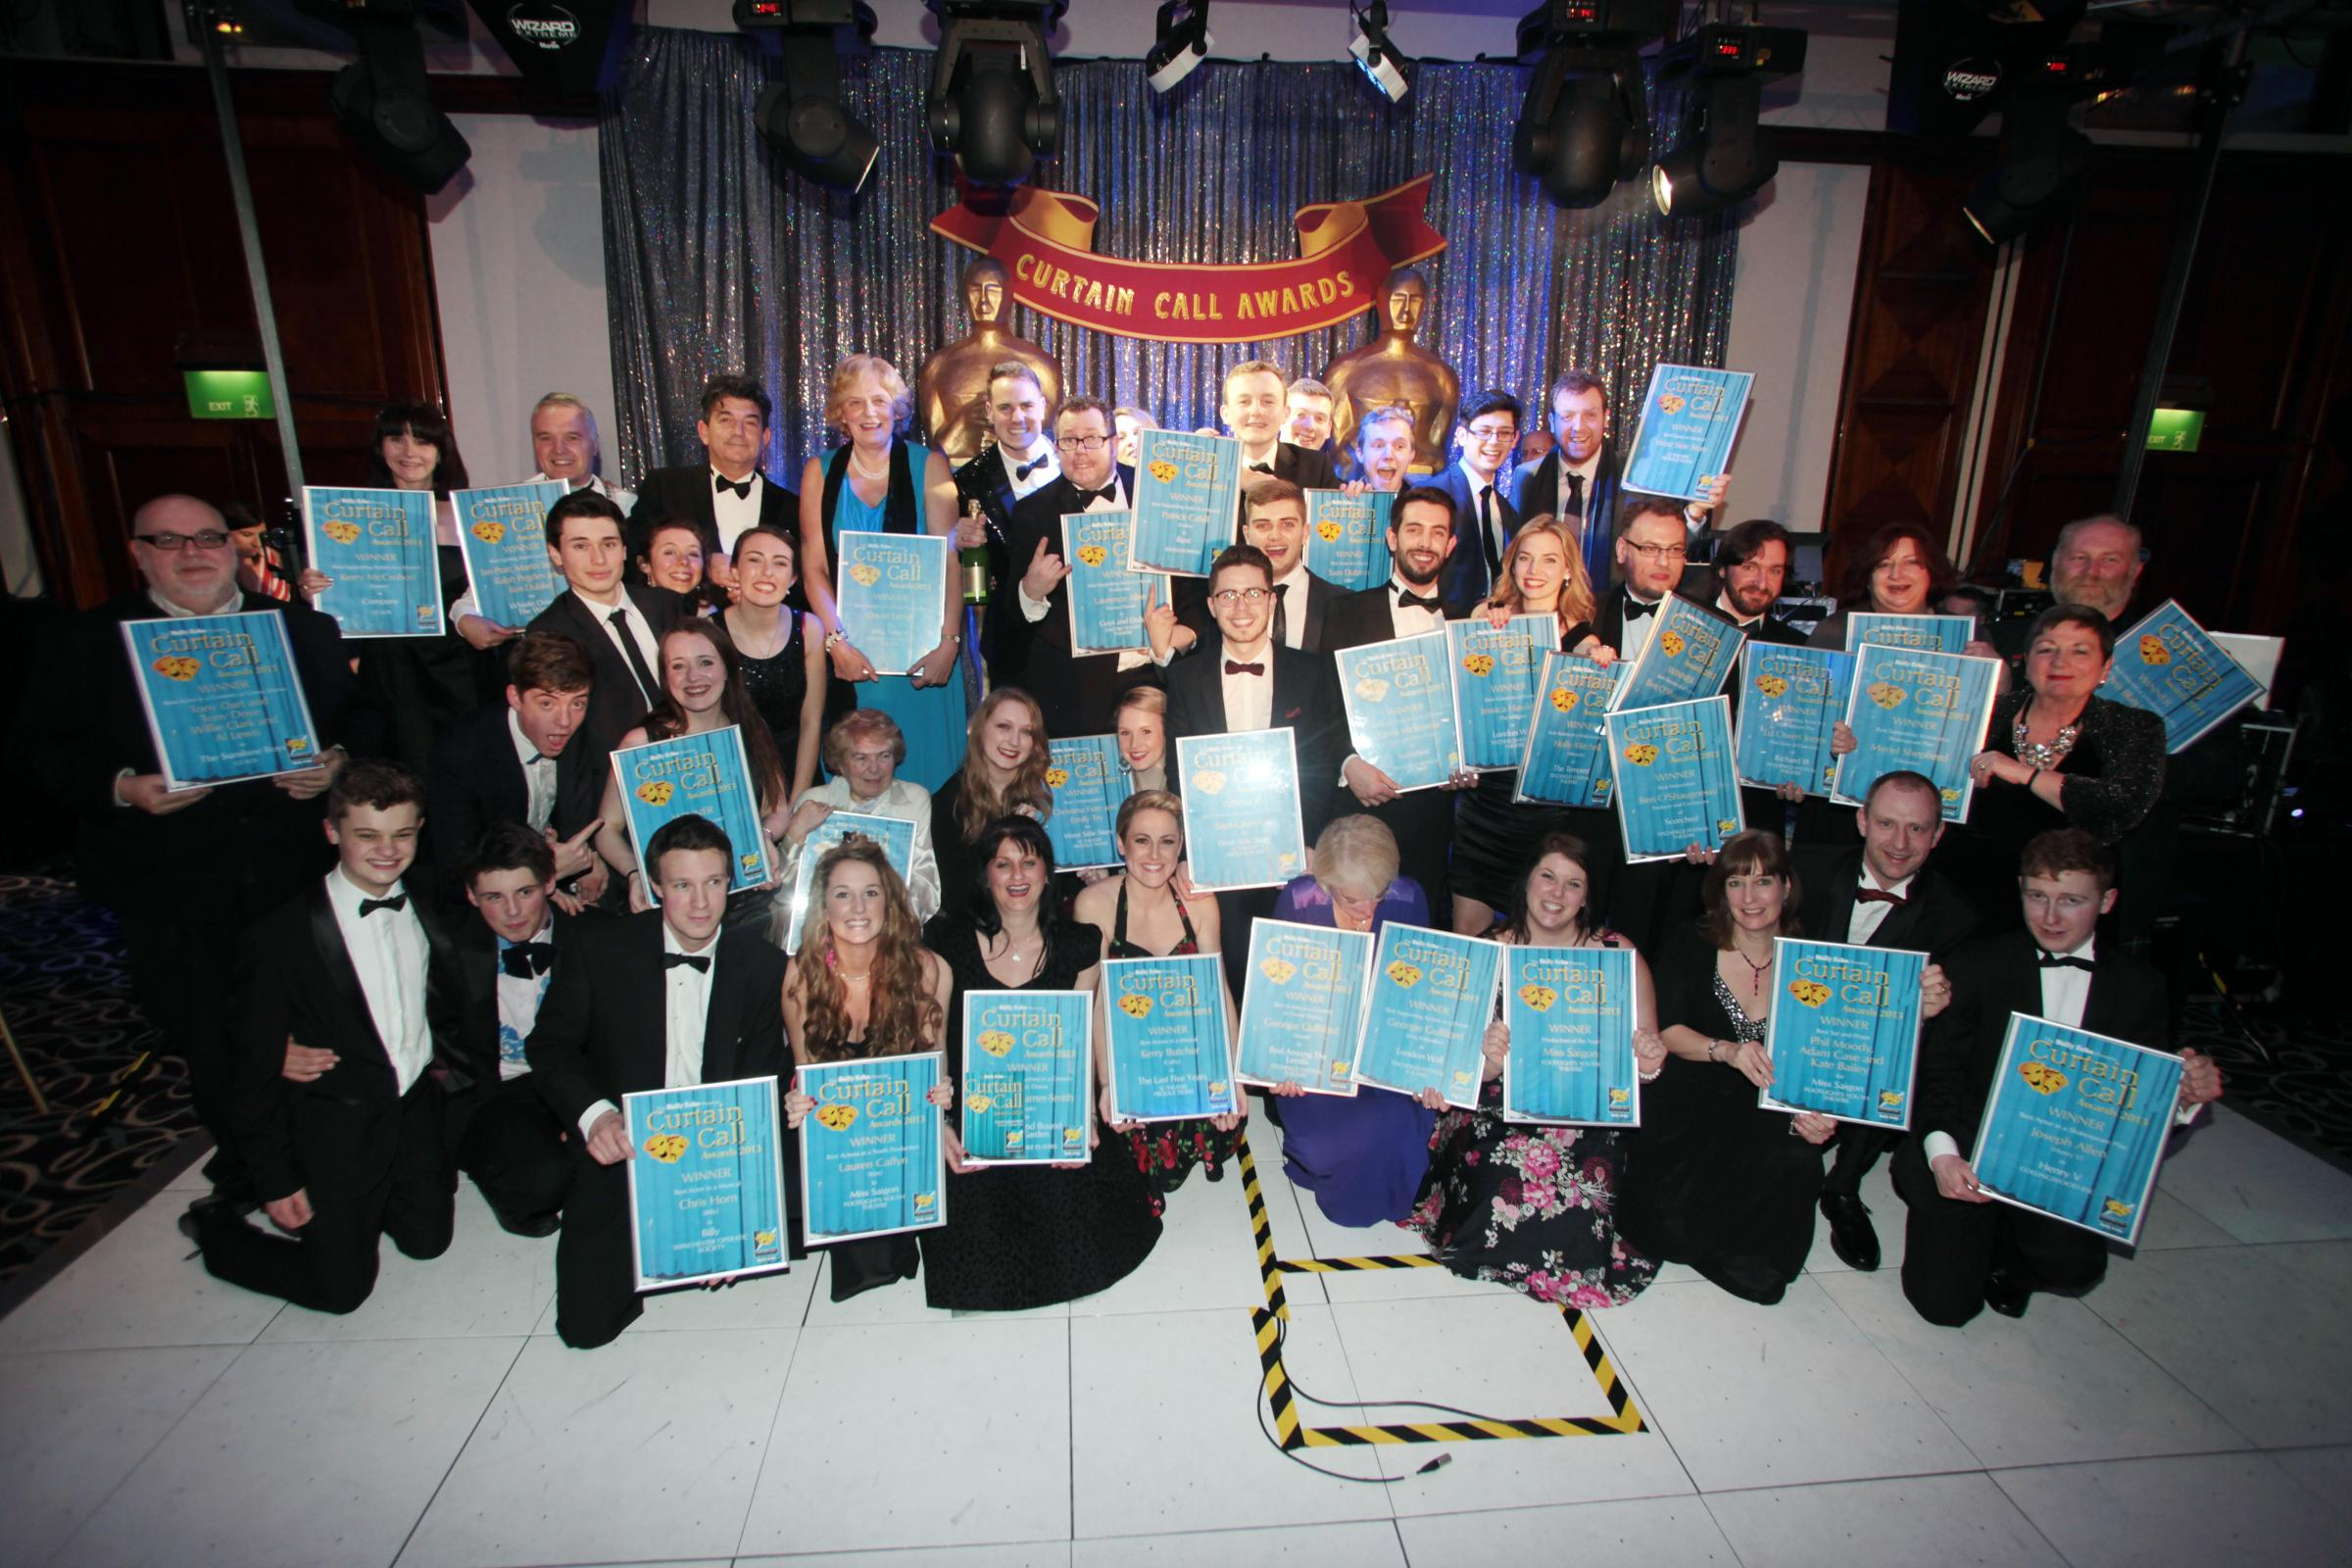 Winners unveiled at the Daily Echo Curtain Call Awards